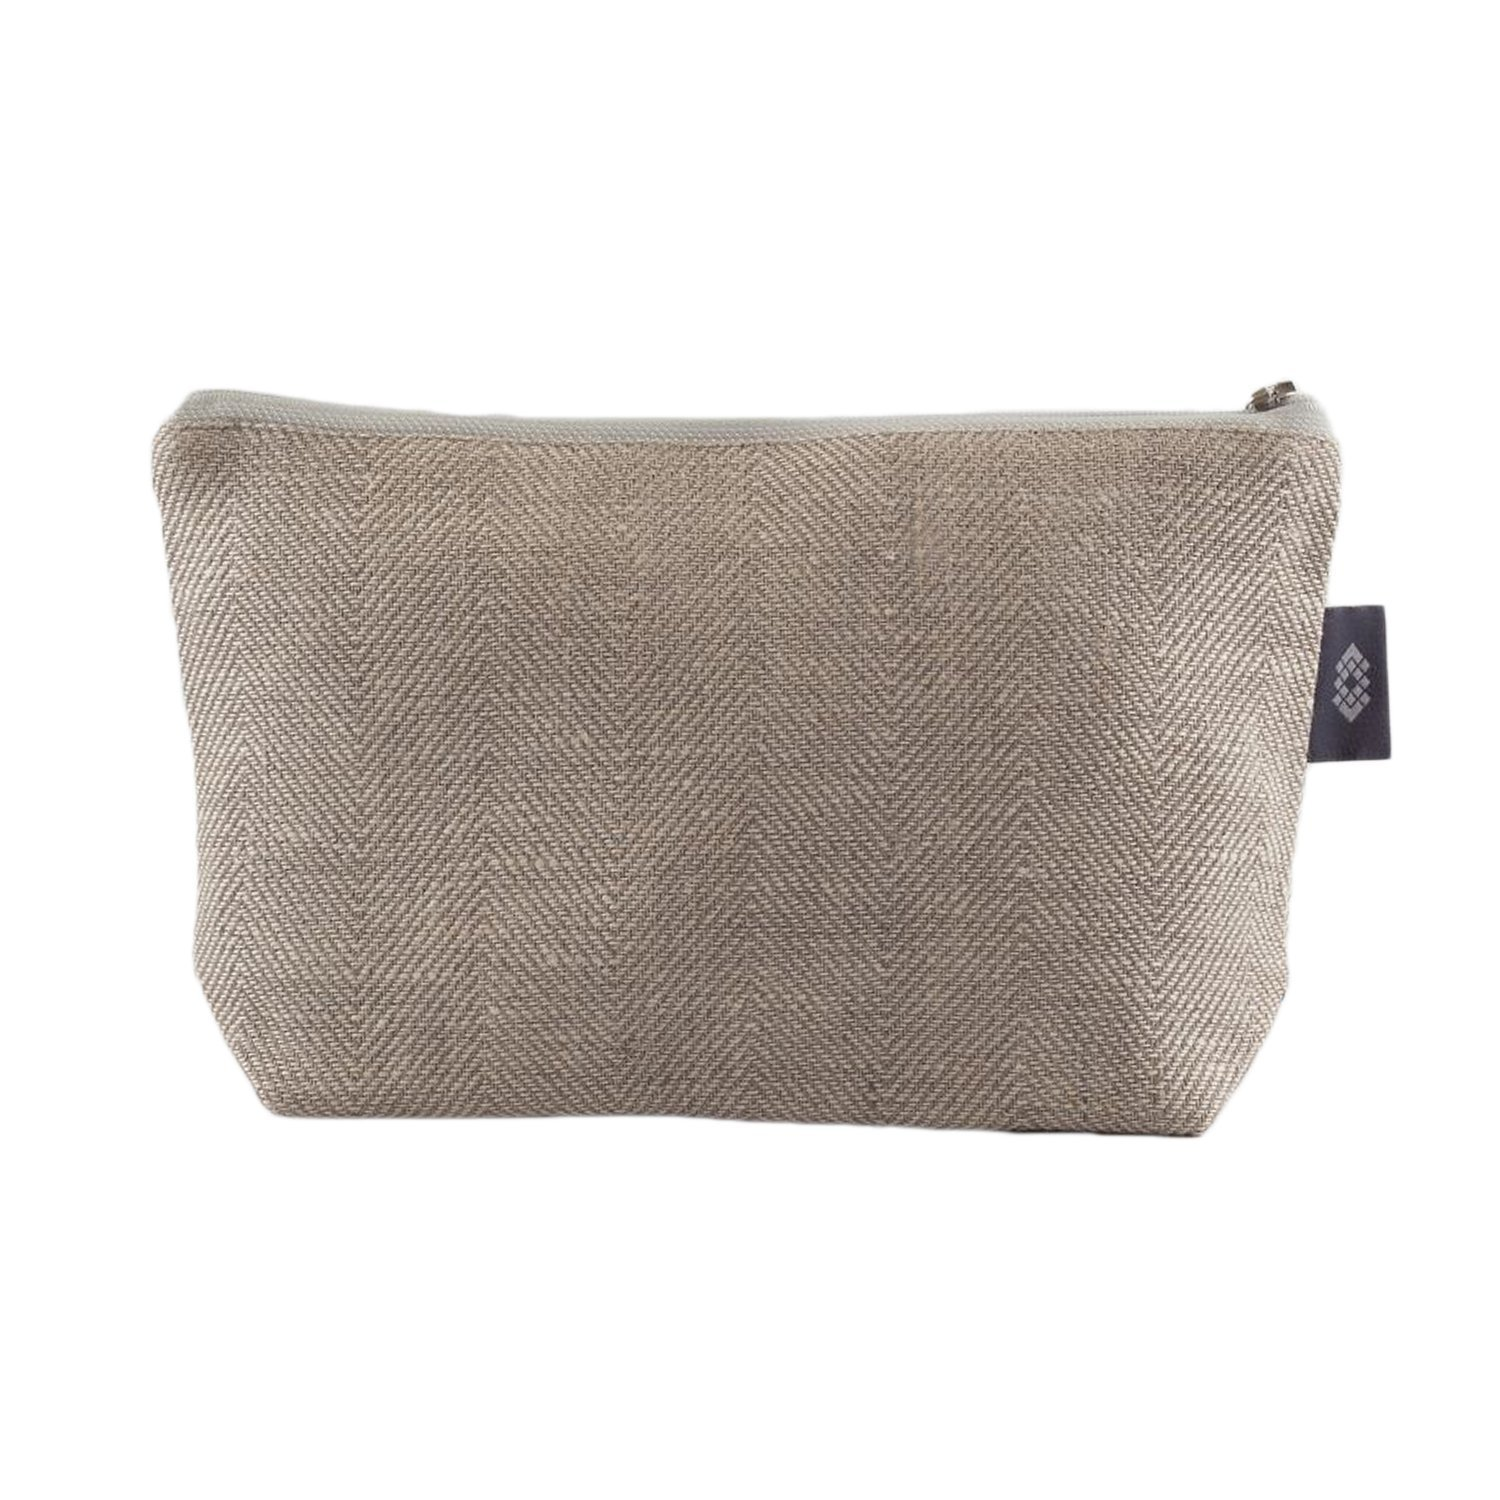 Thingstore White Linen Cosmetic Bag - 100% Flax Linen Makeup Pouch - Canvas Burlap Toiletry Bag Handcrafted